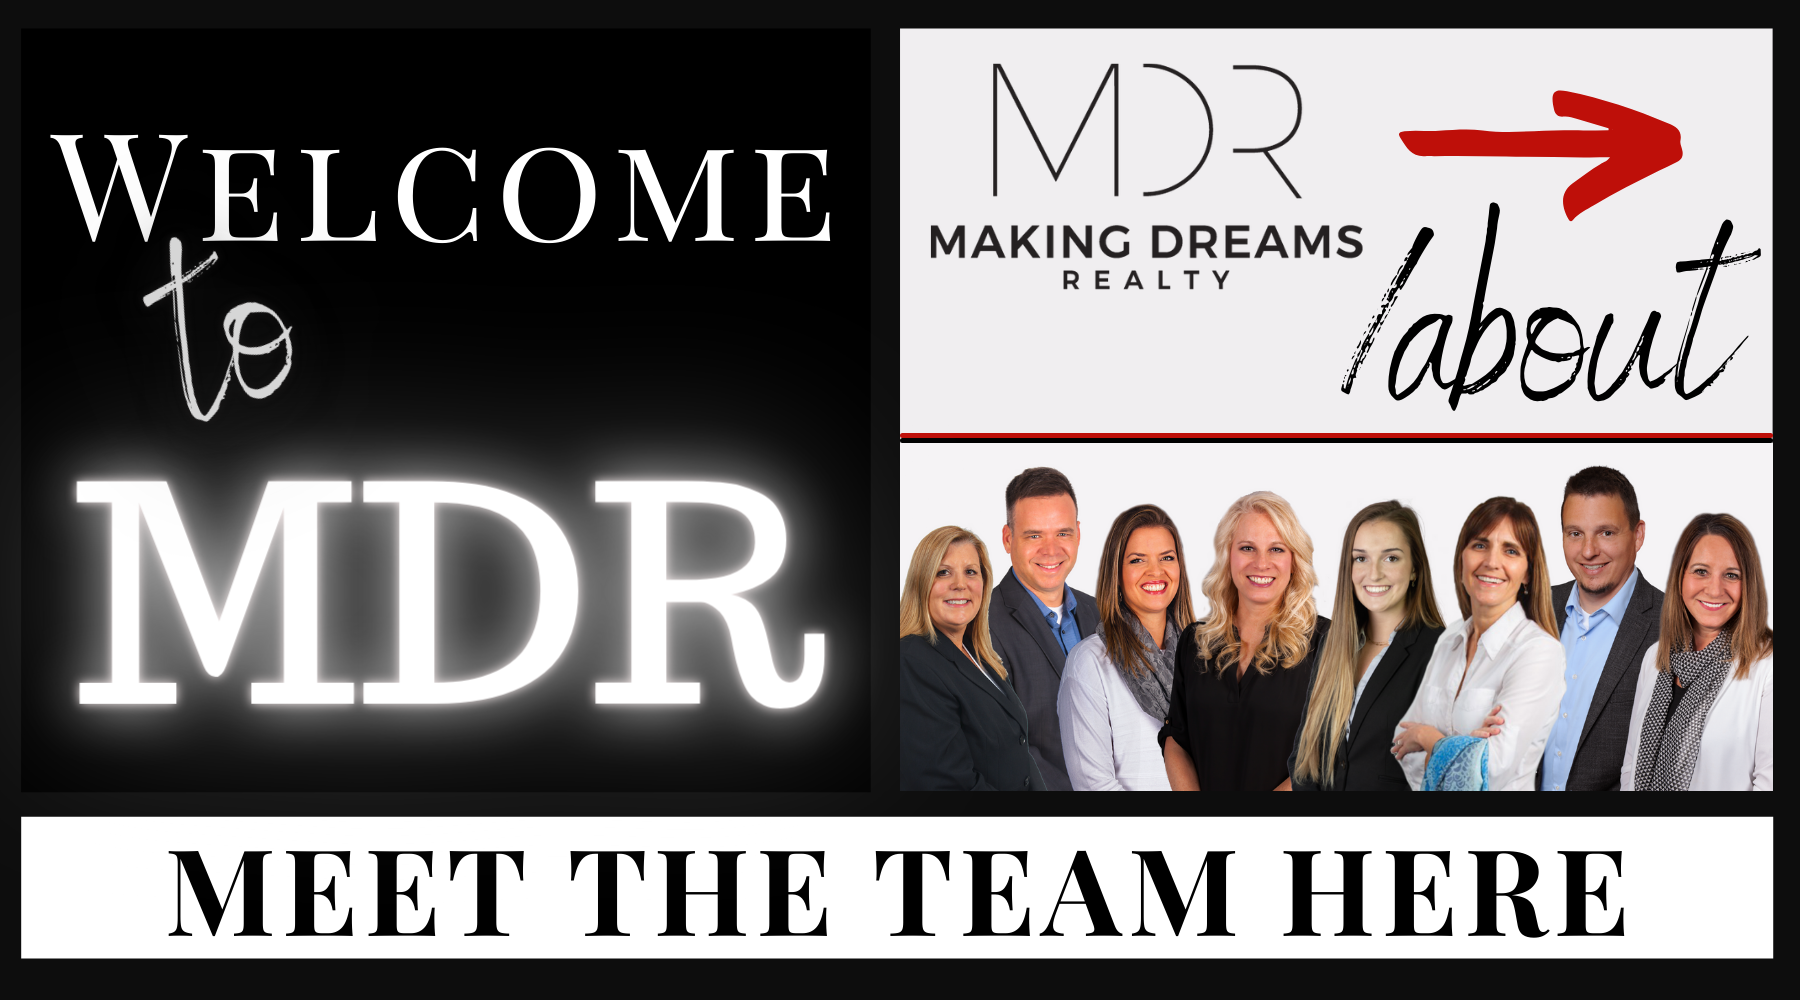 Meet the Team at MAKING DREAMS Realty